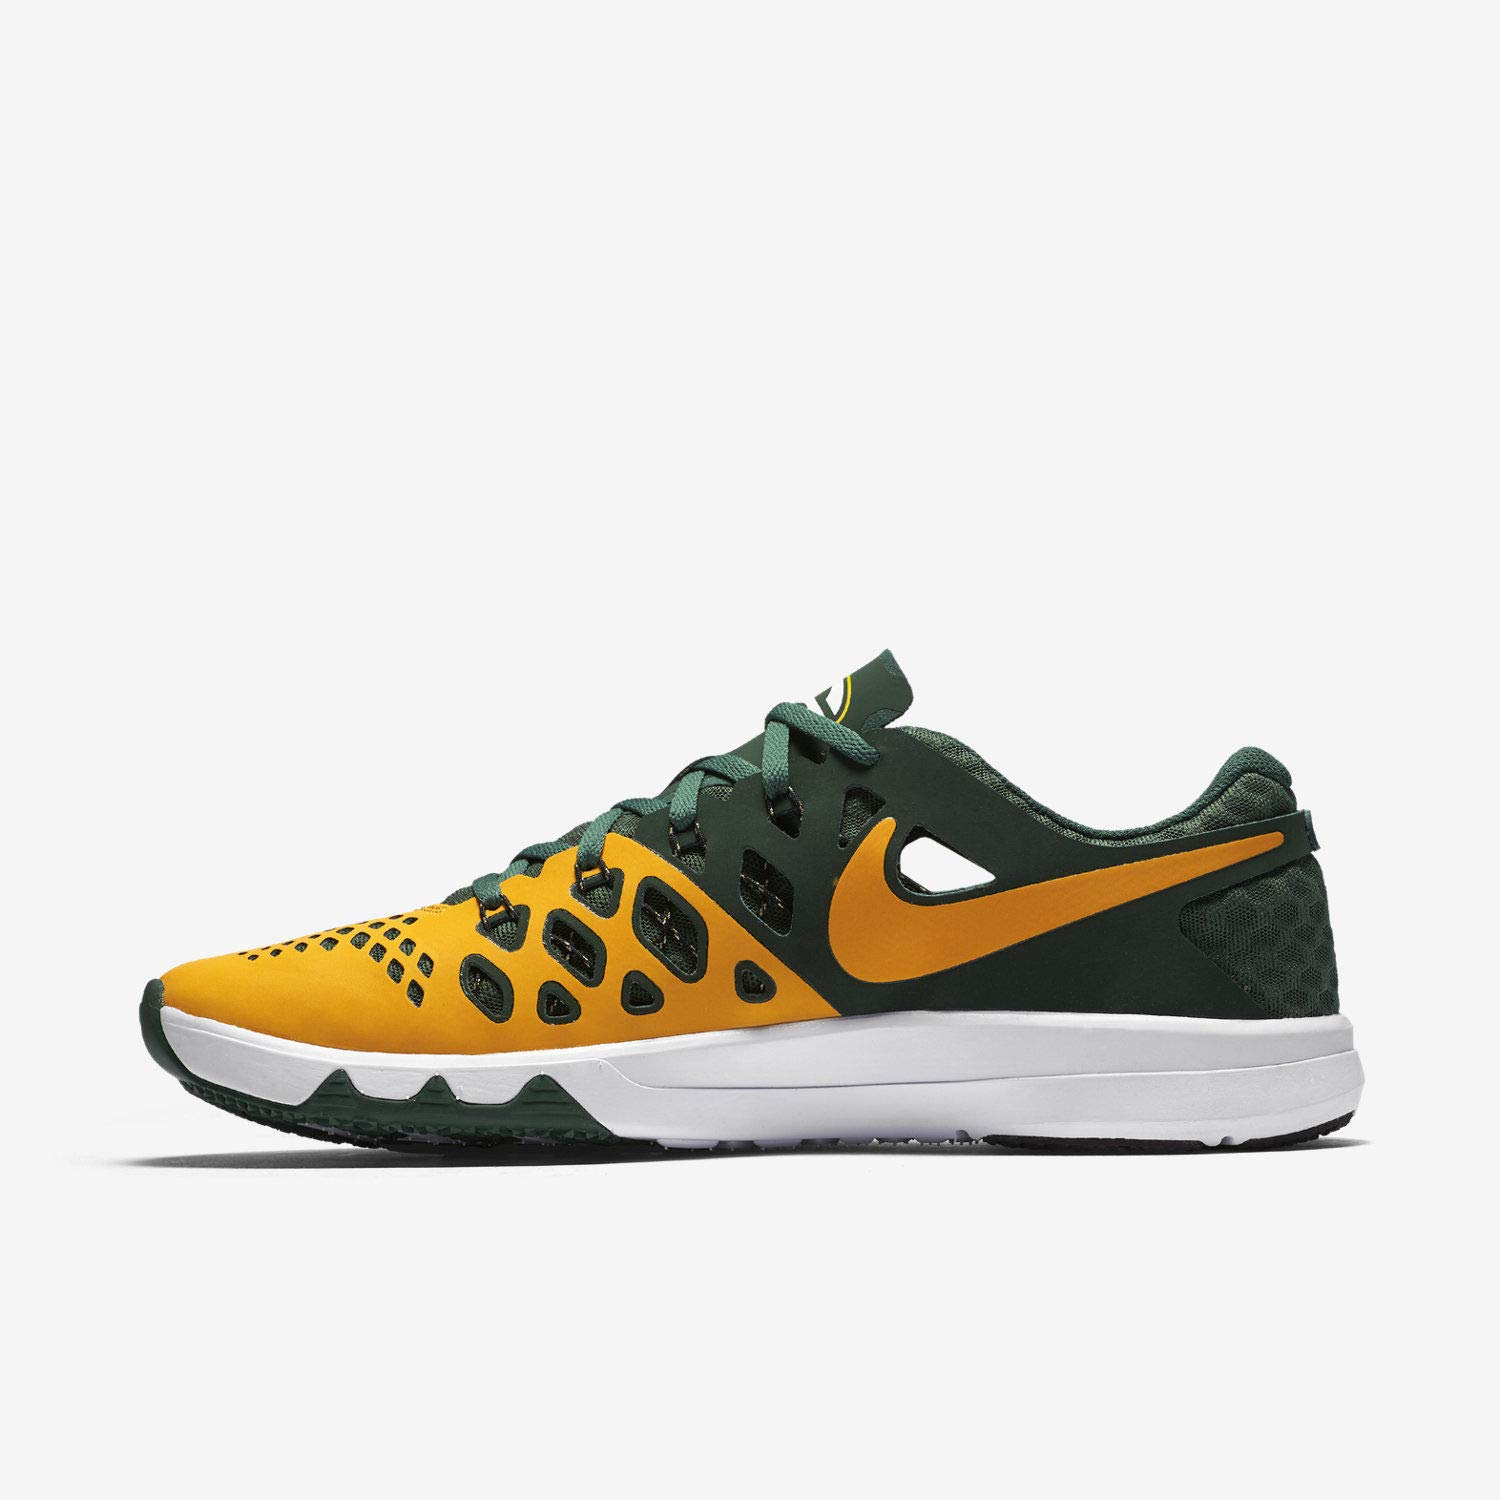 Green Limited Ed Packers ShoesSize9 Bay Train US848587 706 NFL 4 5 Men's Nike AMP Speed 4c3L5jSRAq